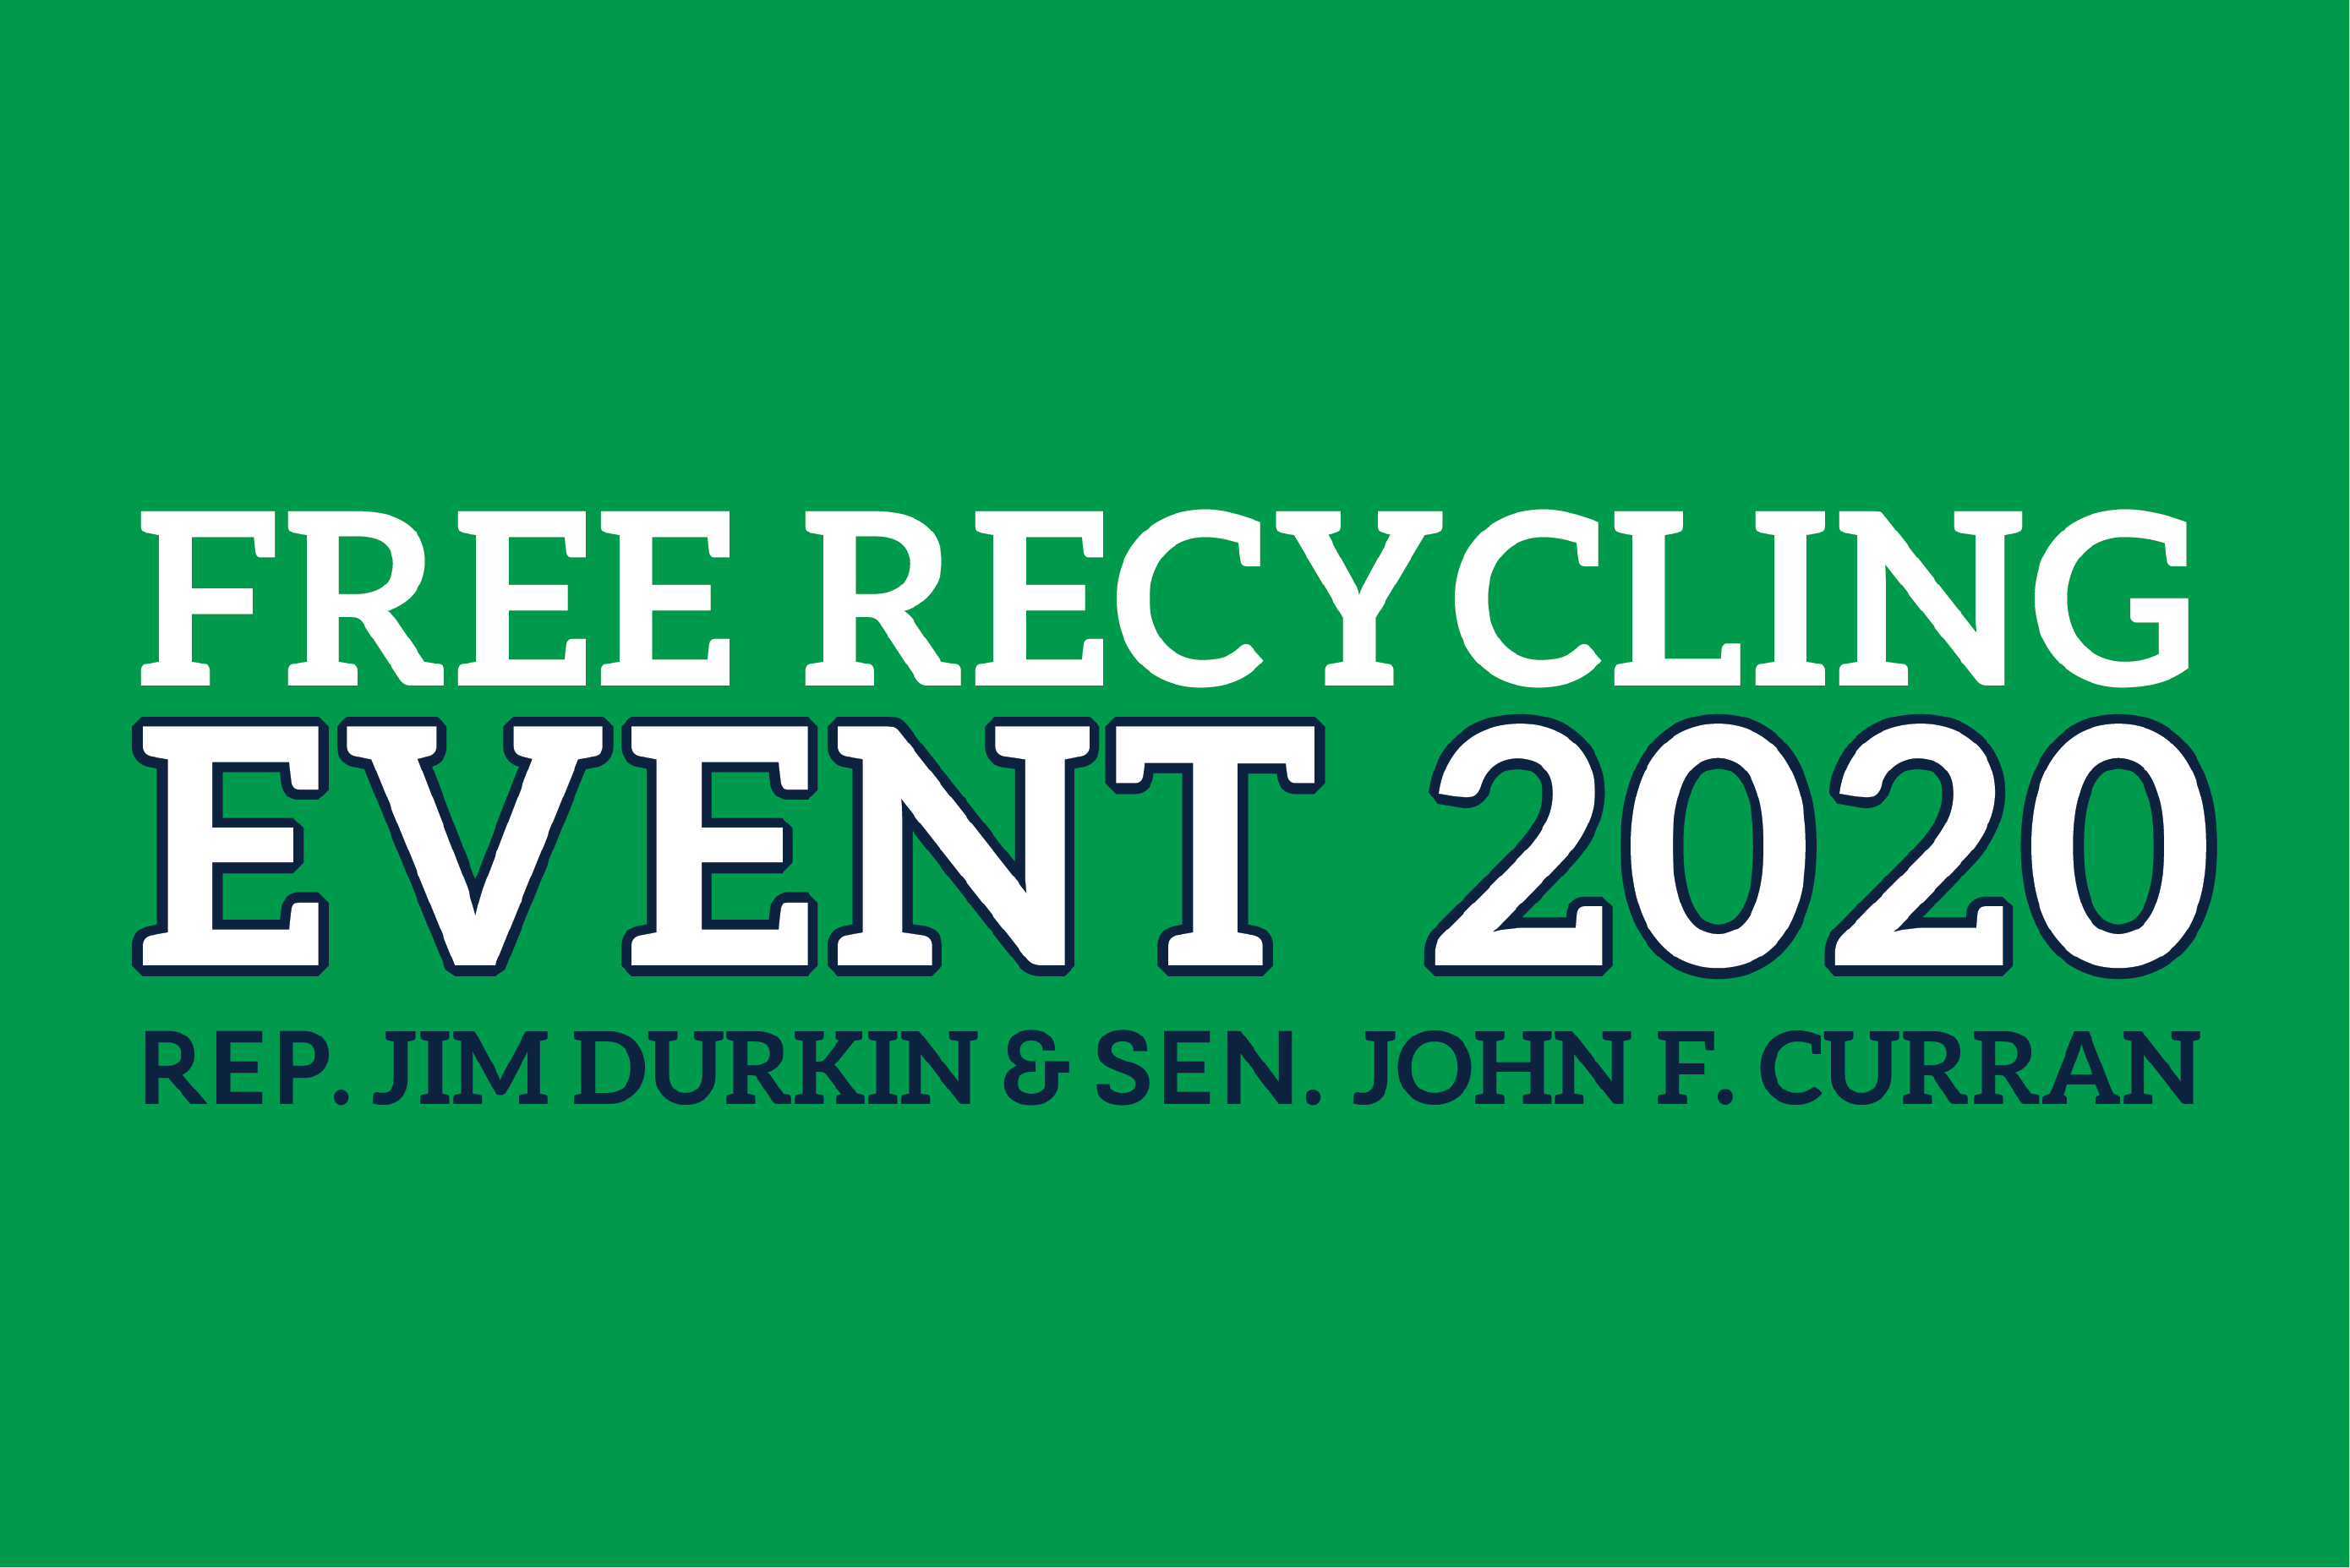 Rep. Durkin Aug 1, 2020 Recycle Event